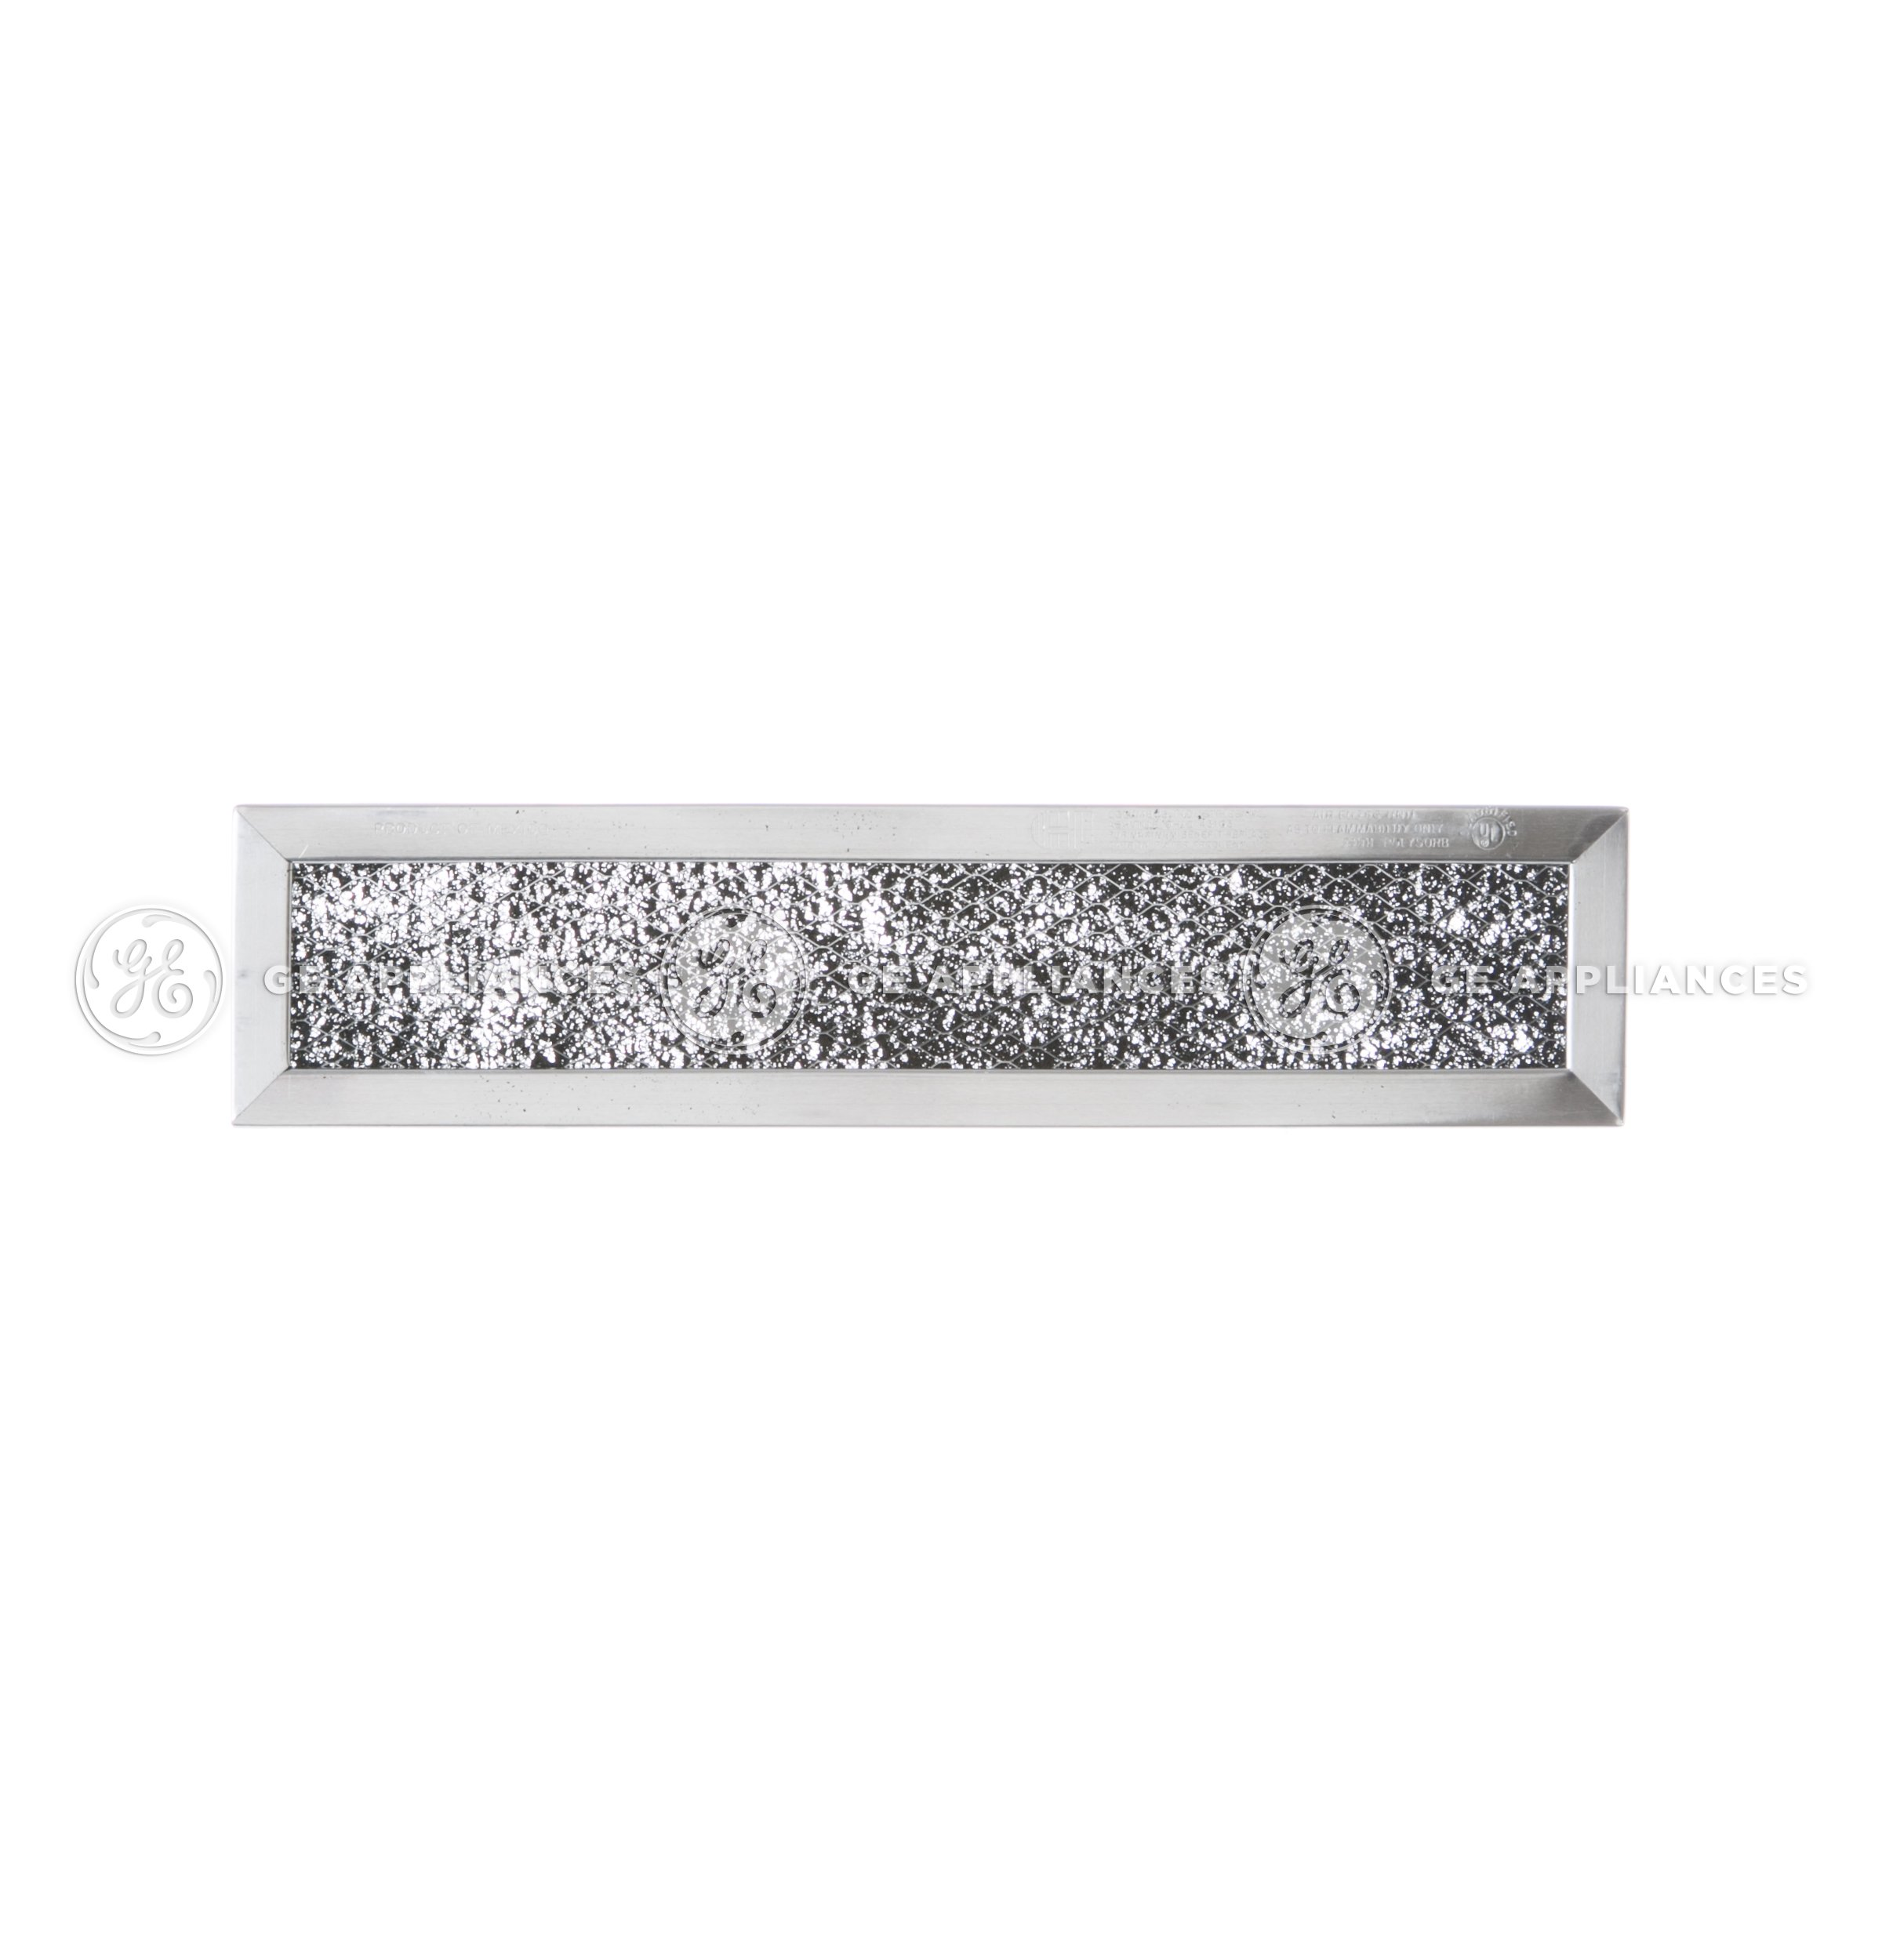 GE WB02X10943 Charcoal Filter (Option)